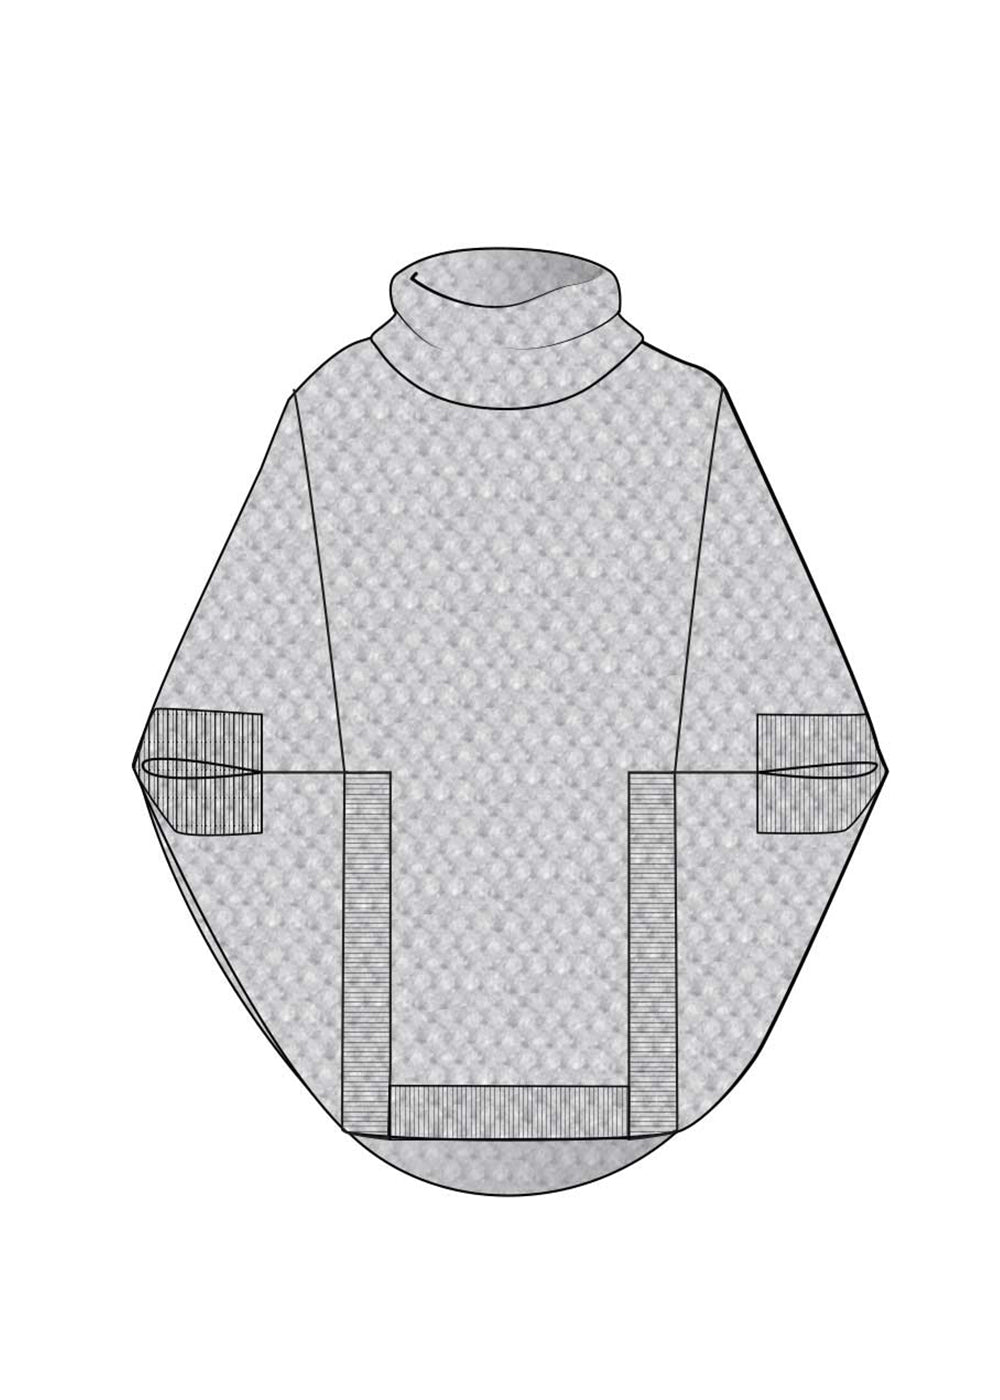 Nomads Hemp Wear Moonlight Poncho